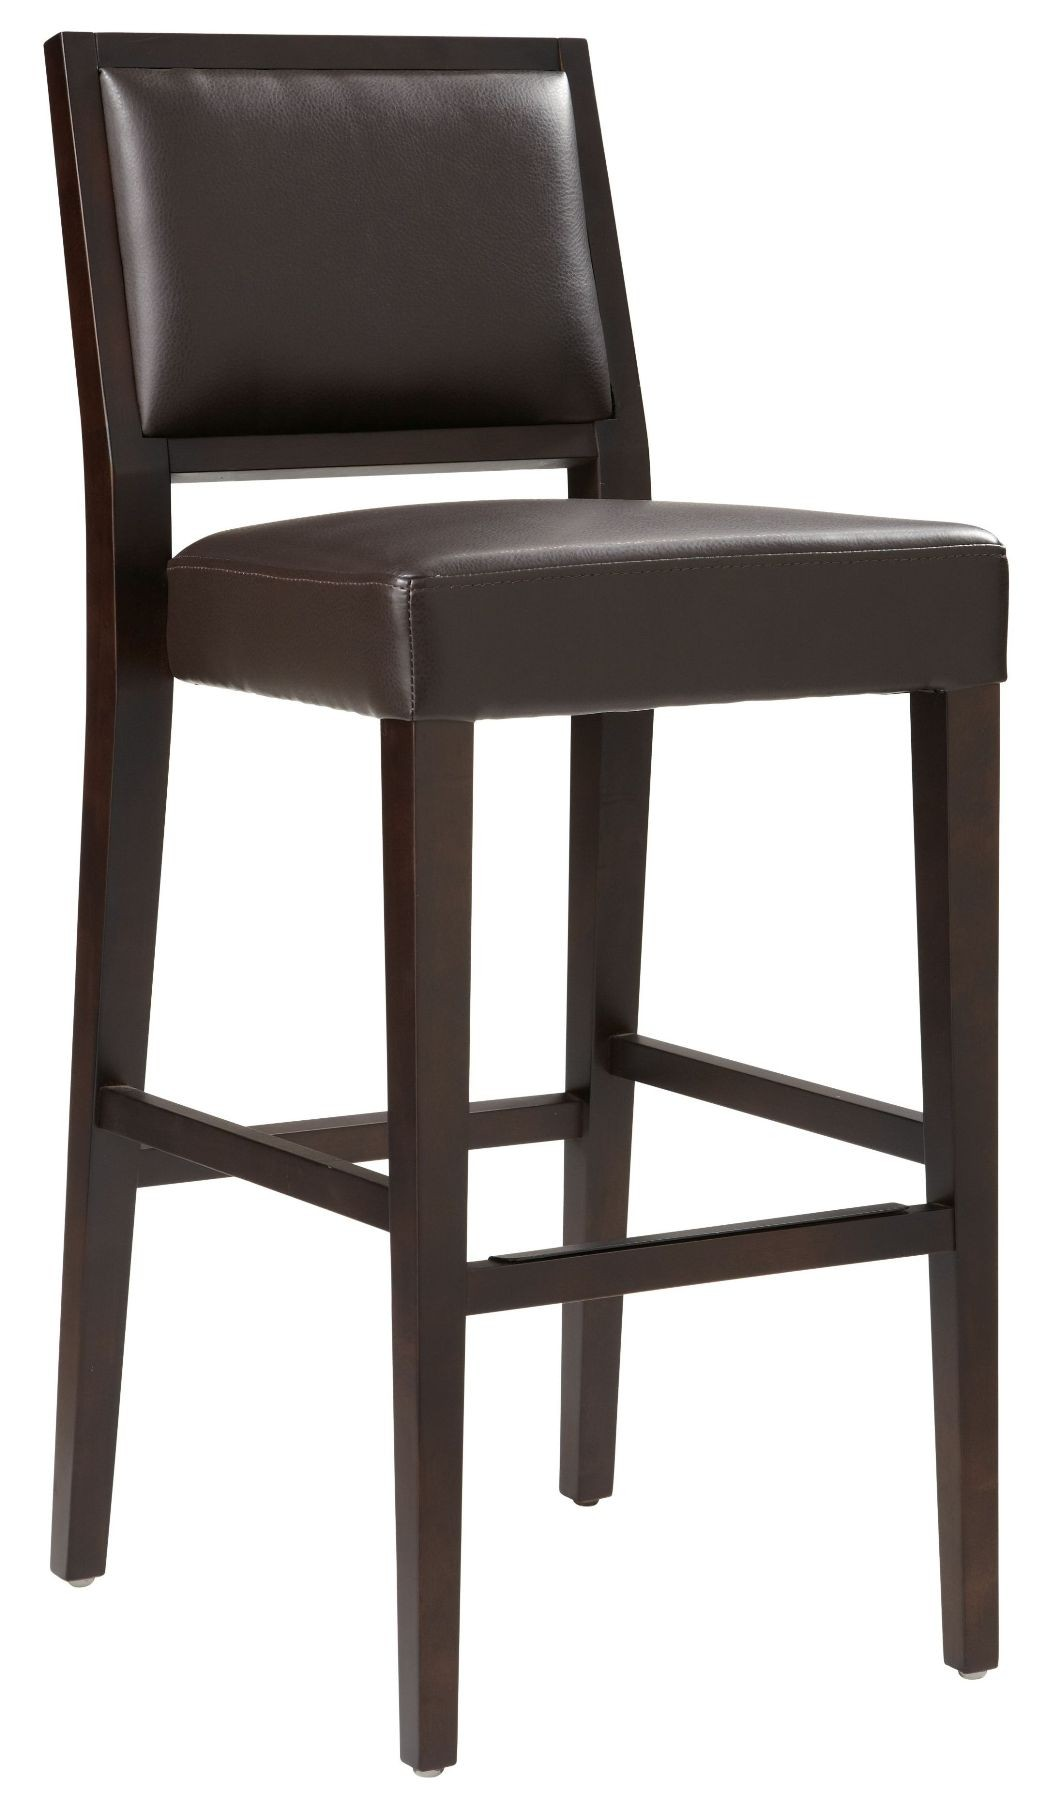 Citizen Brown Barstool From Sunpan 49051 Coleman Furniture